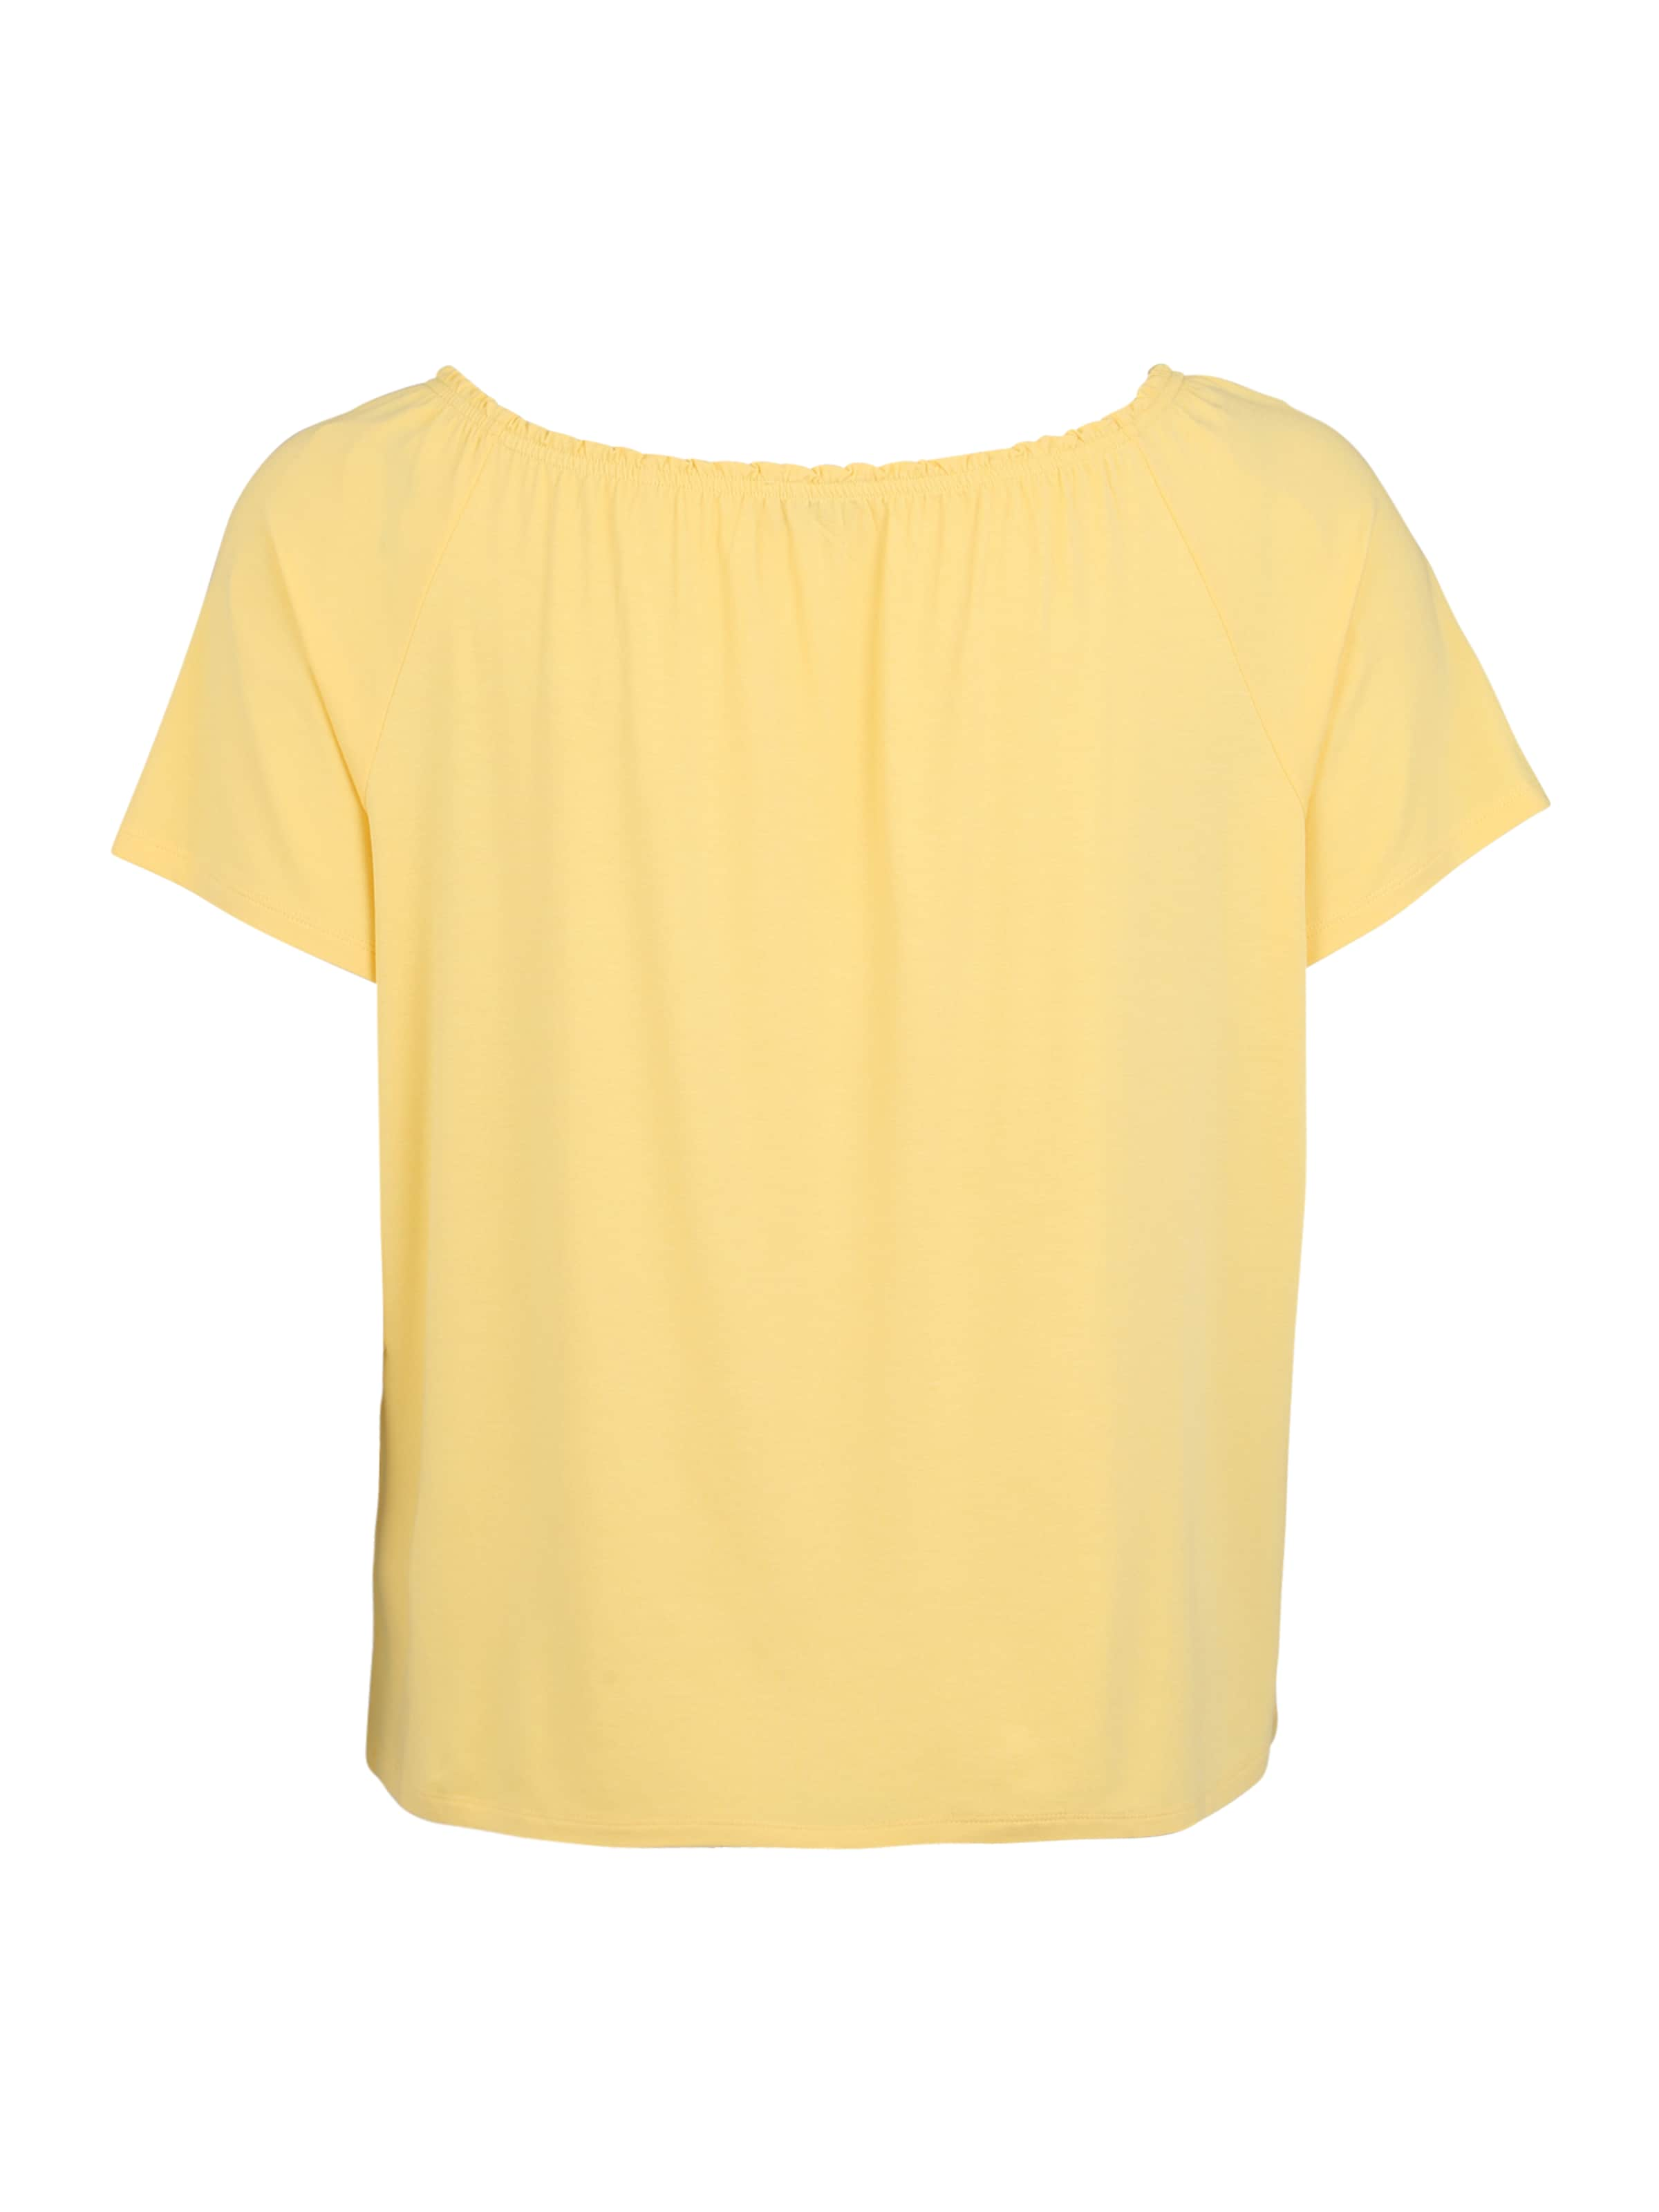 In In In Gelb Shirt Triangle Gelb Shirt Shirt Triangle Triangle dxCoeB